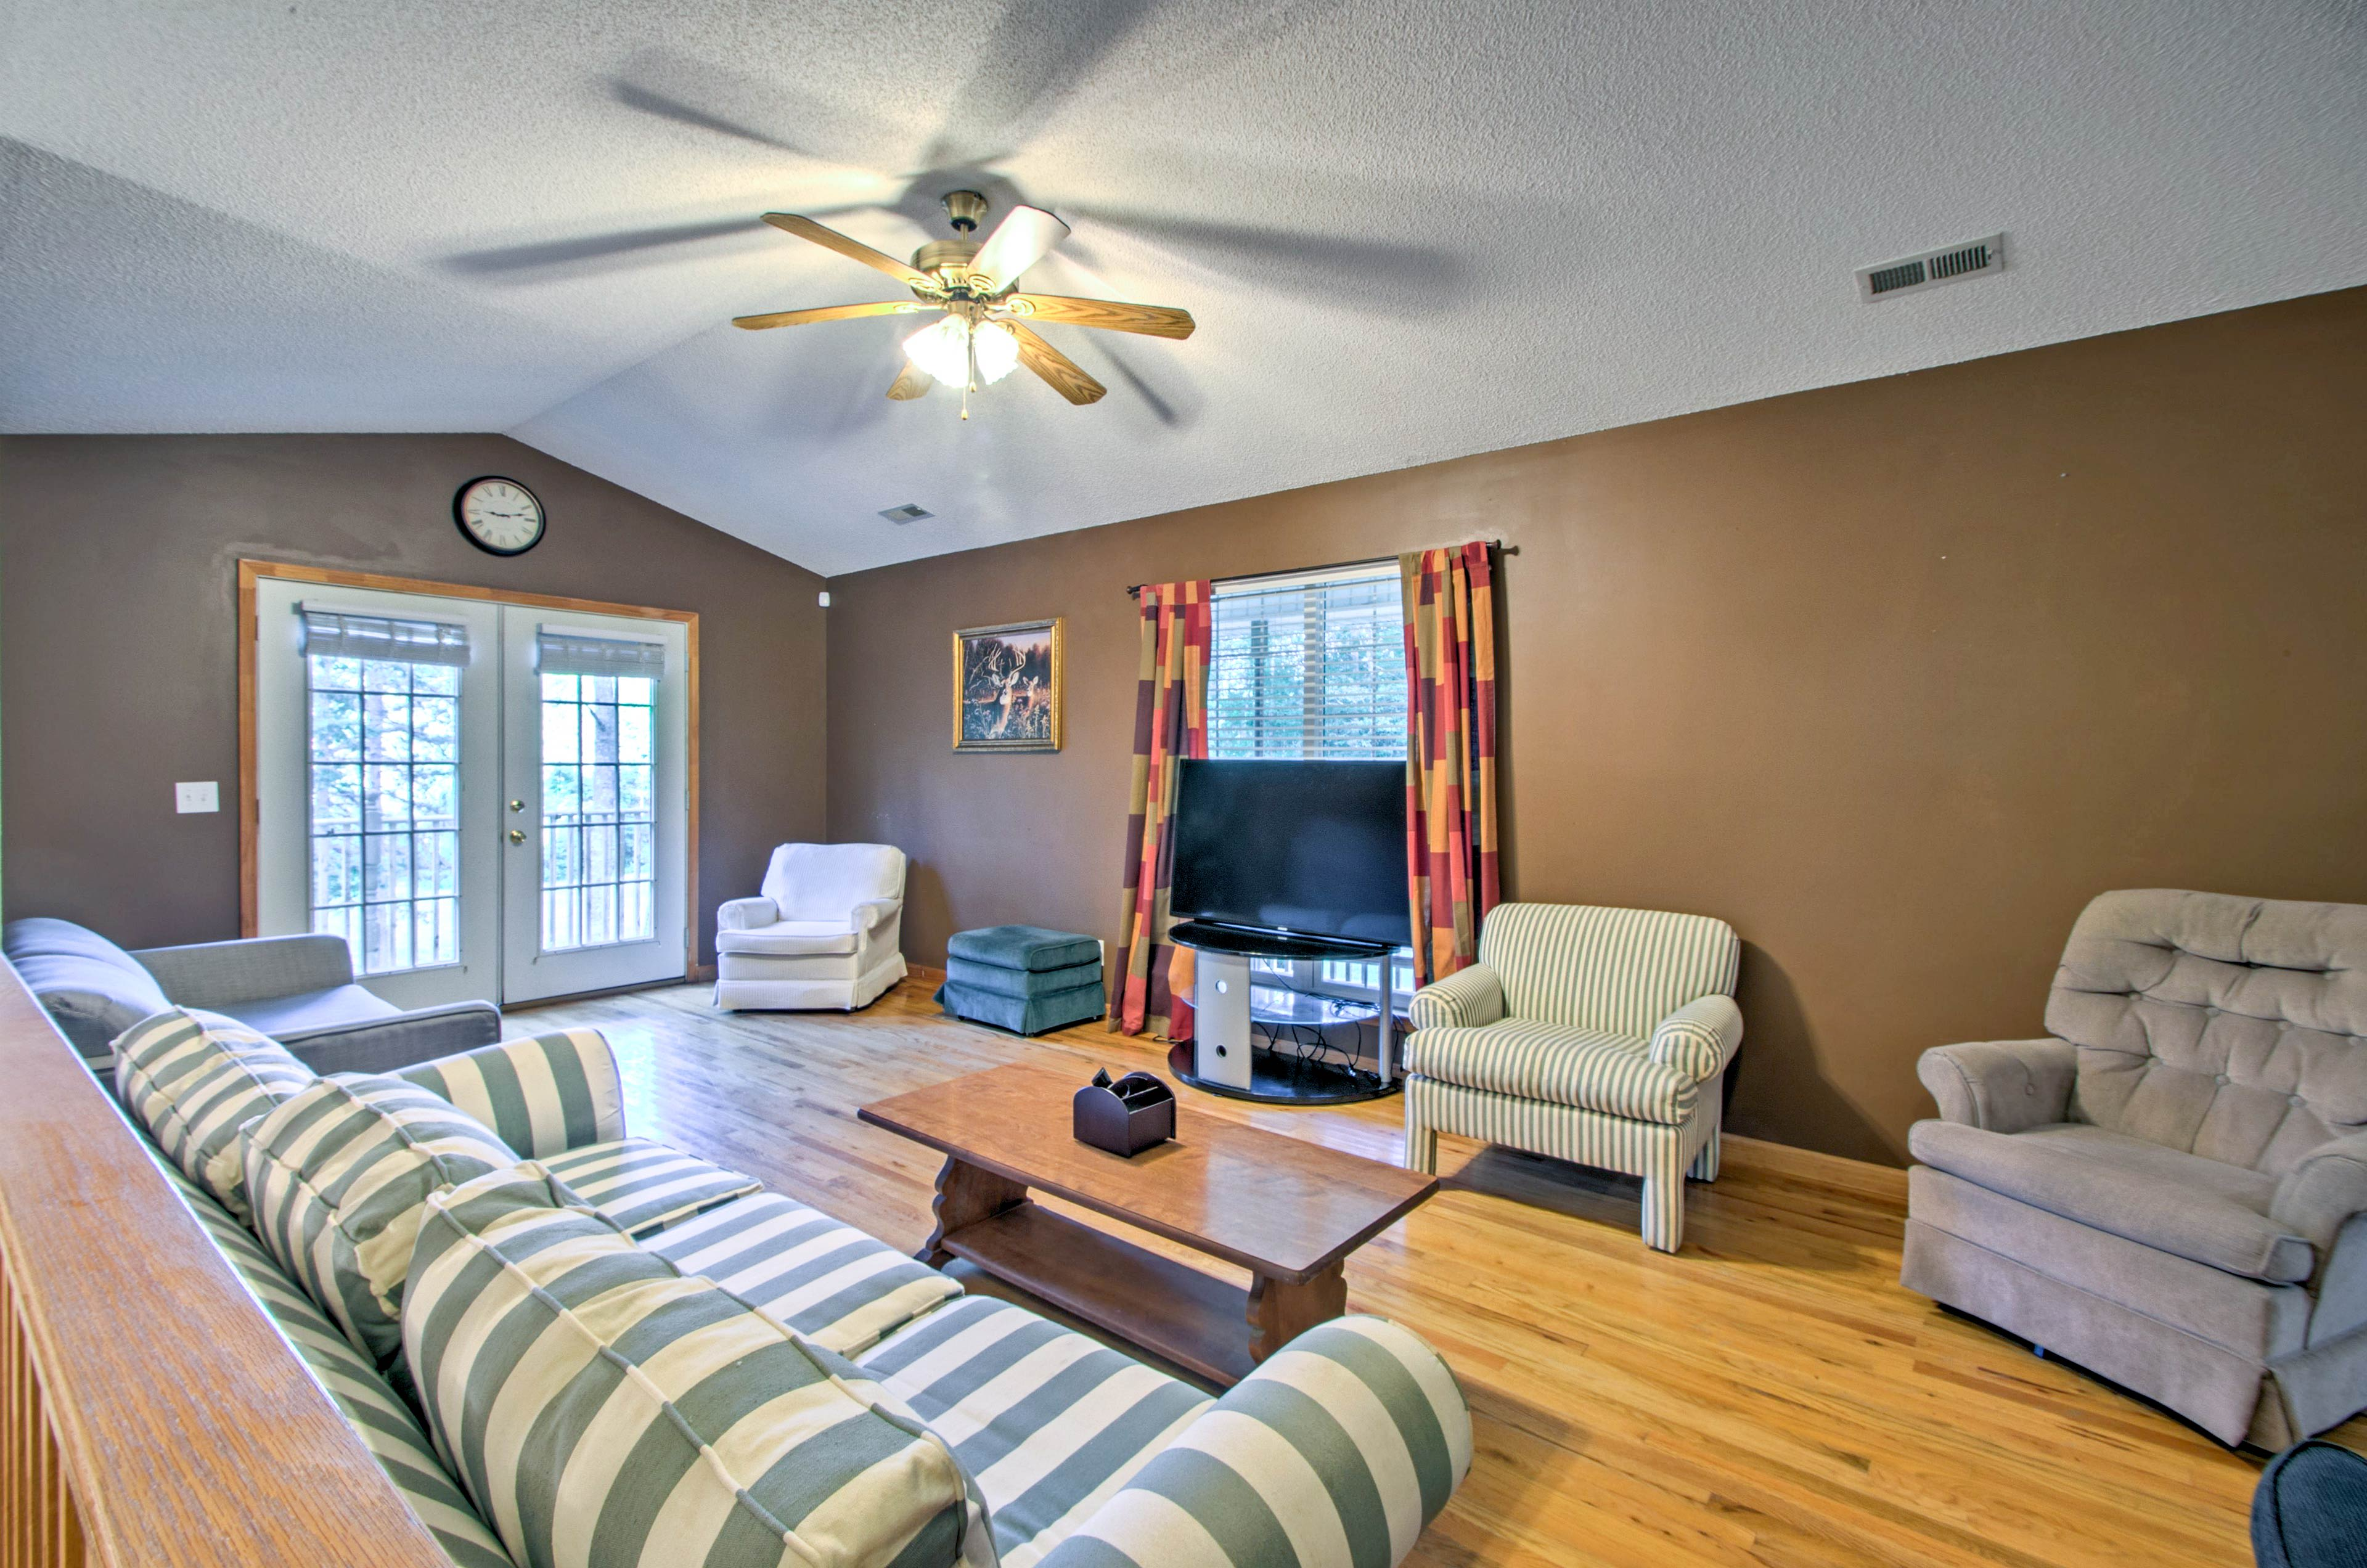 There are 3 bedrooms and 2 bathrooms to accommodate 6 guests.